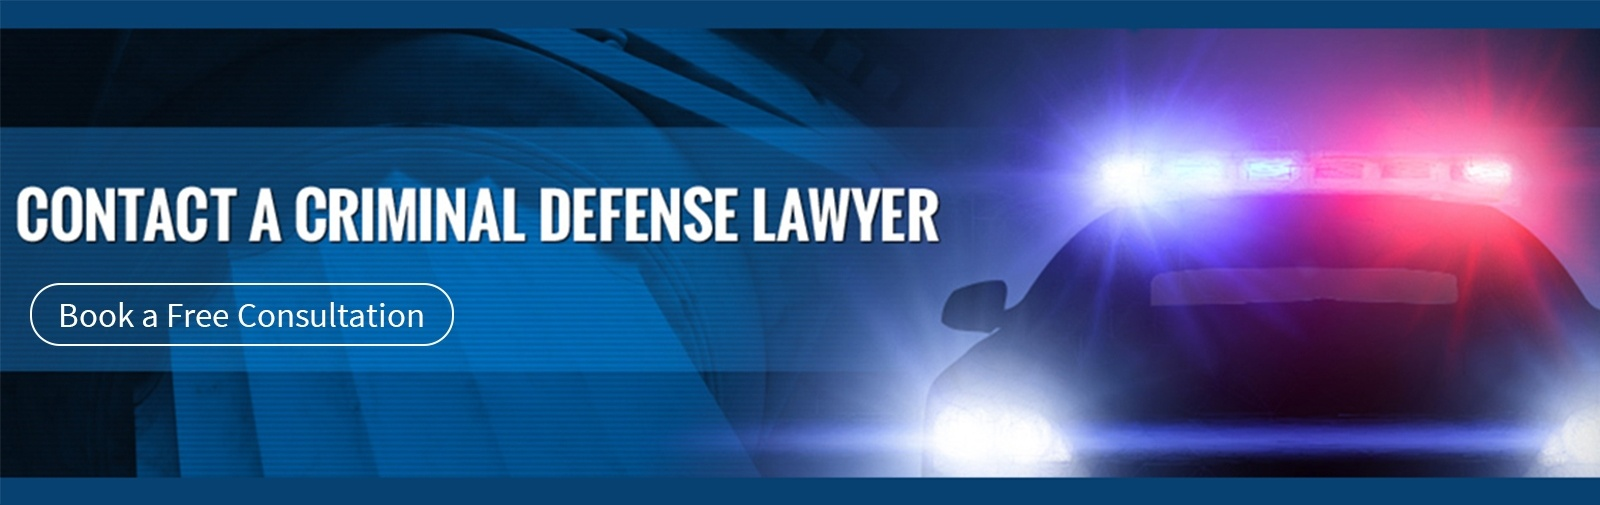 Criminal Defense Attorneys Mchenry County and Chicago IL